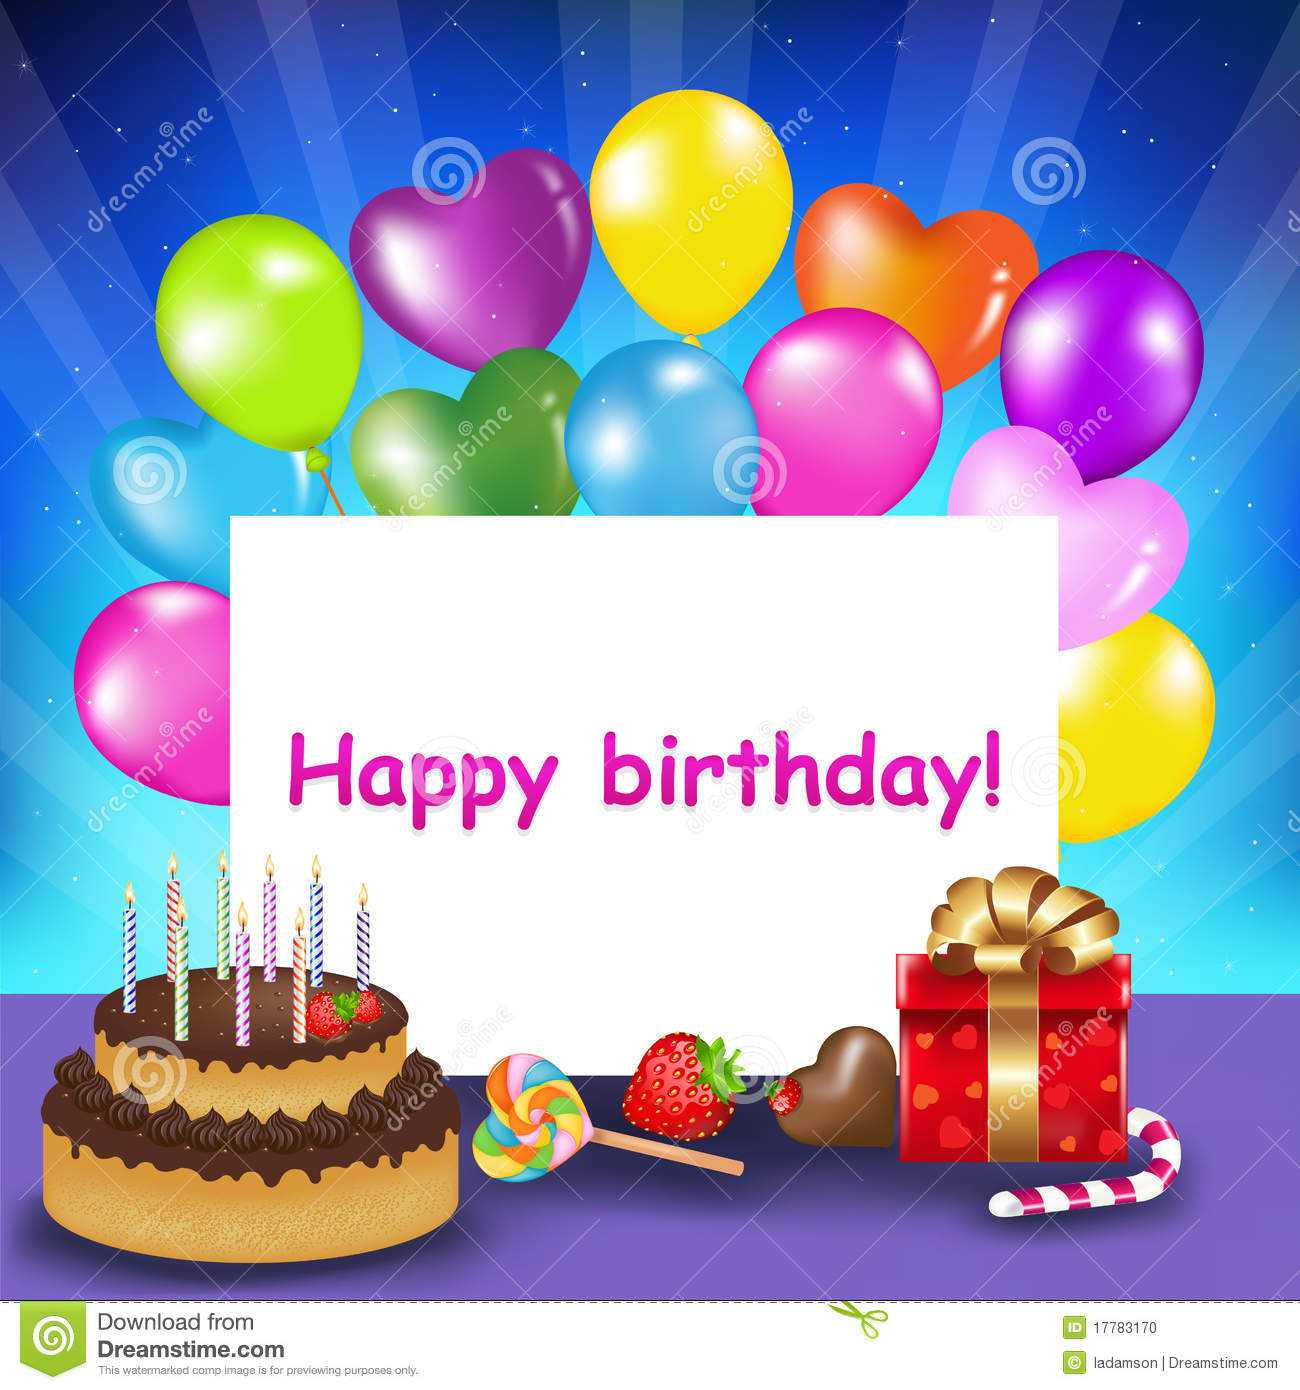 birthday card pictures for facebook ; free-happy-birthday-card-for-facebook-birthday-cards-free-